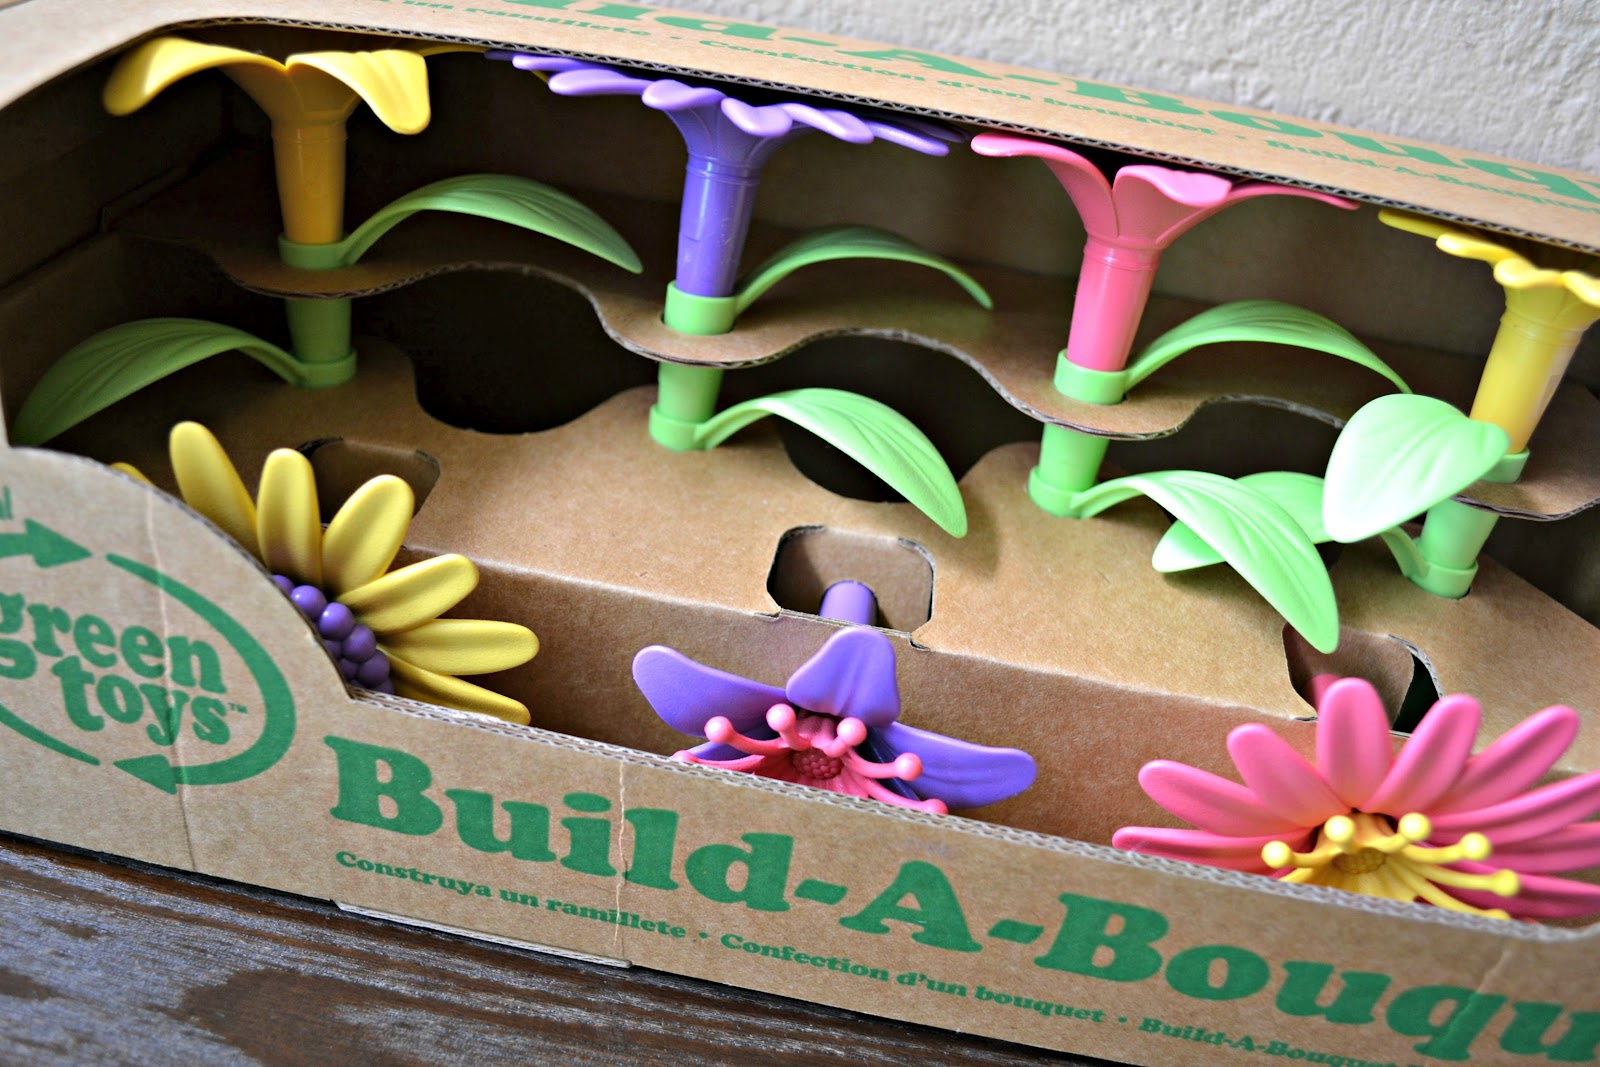 We Re Heading To A Party In Of Weeks For Sweet Little 3 Year Old And Ll Be Bringing This Green Toys Build Bouquet Fl Arrangement